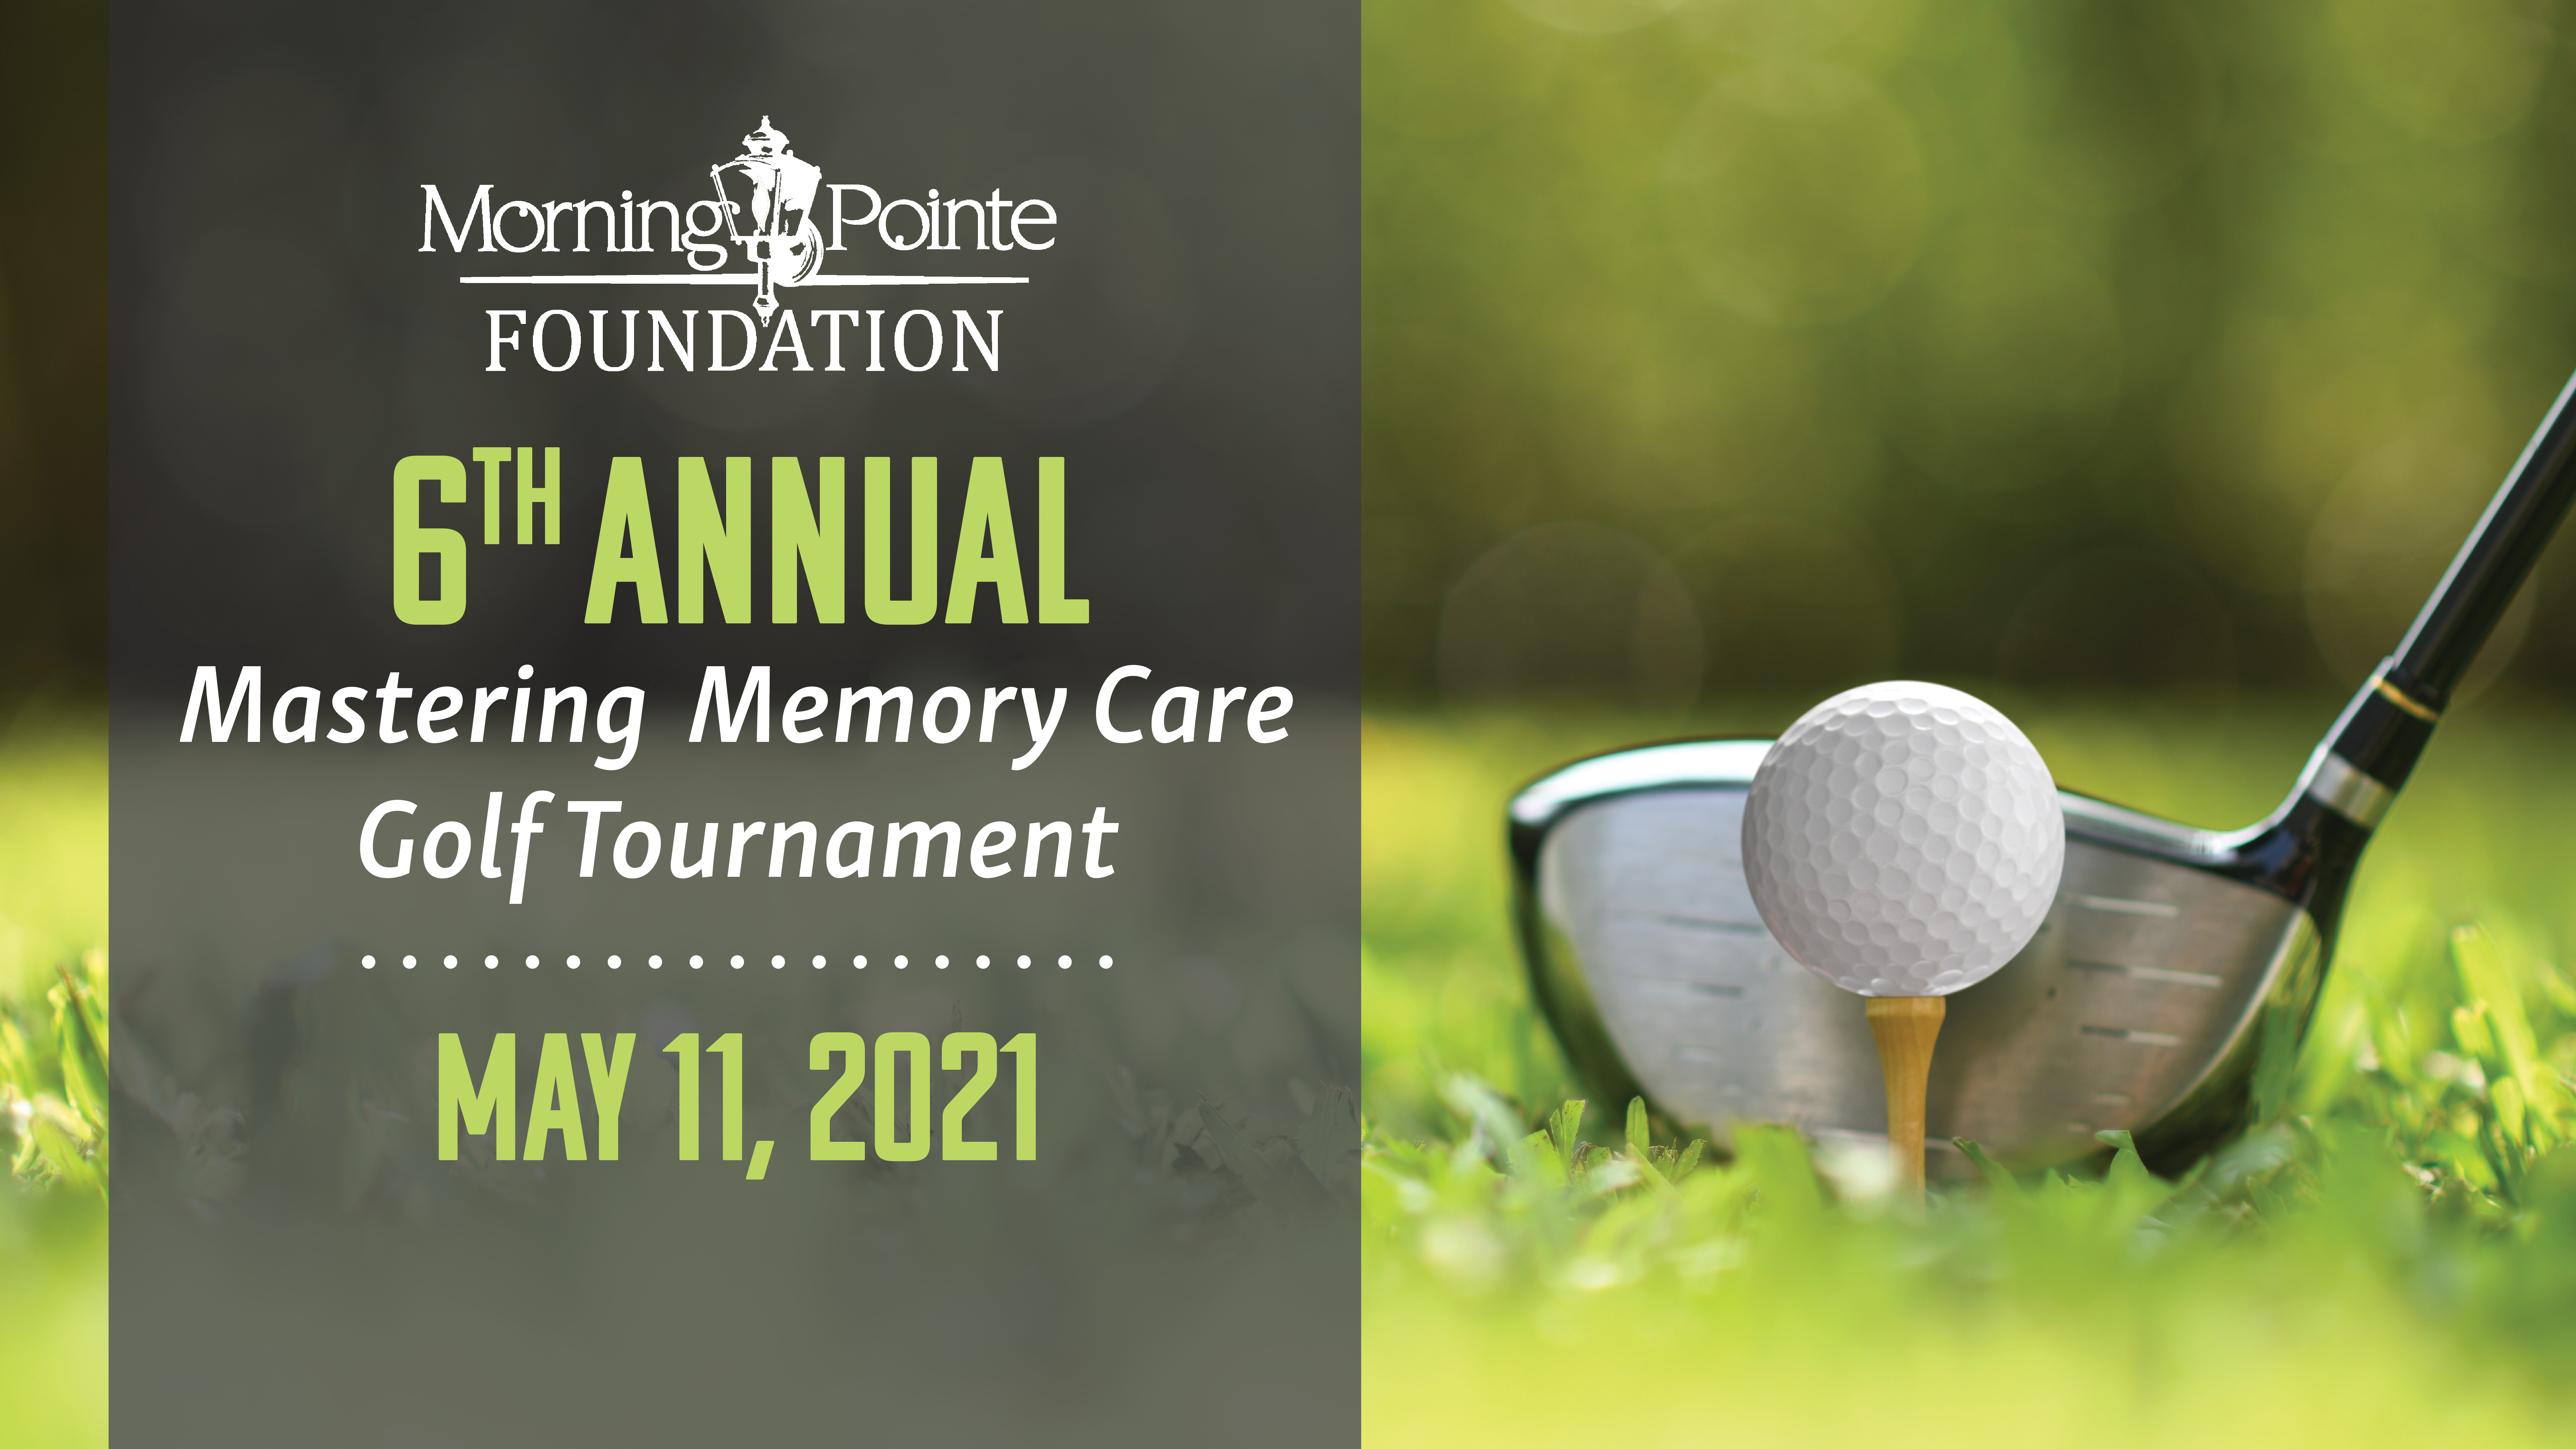 6th Annual Mastering Memory Care Golf Tournament Set For May 11, 2021